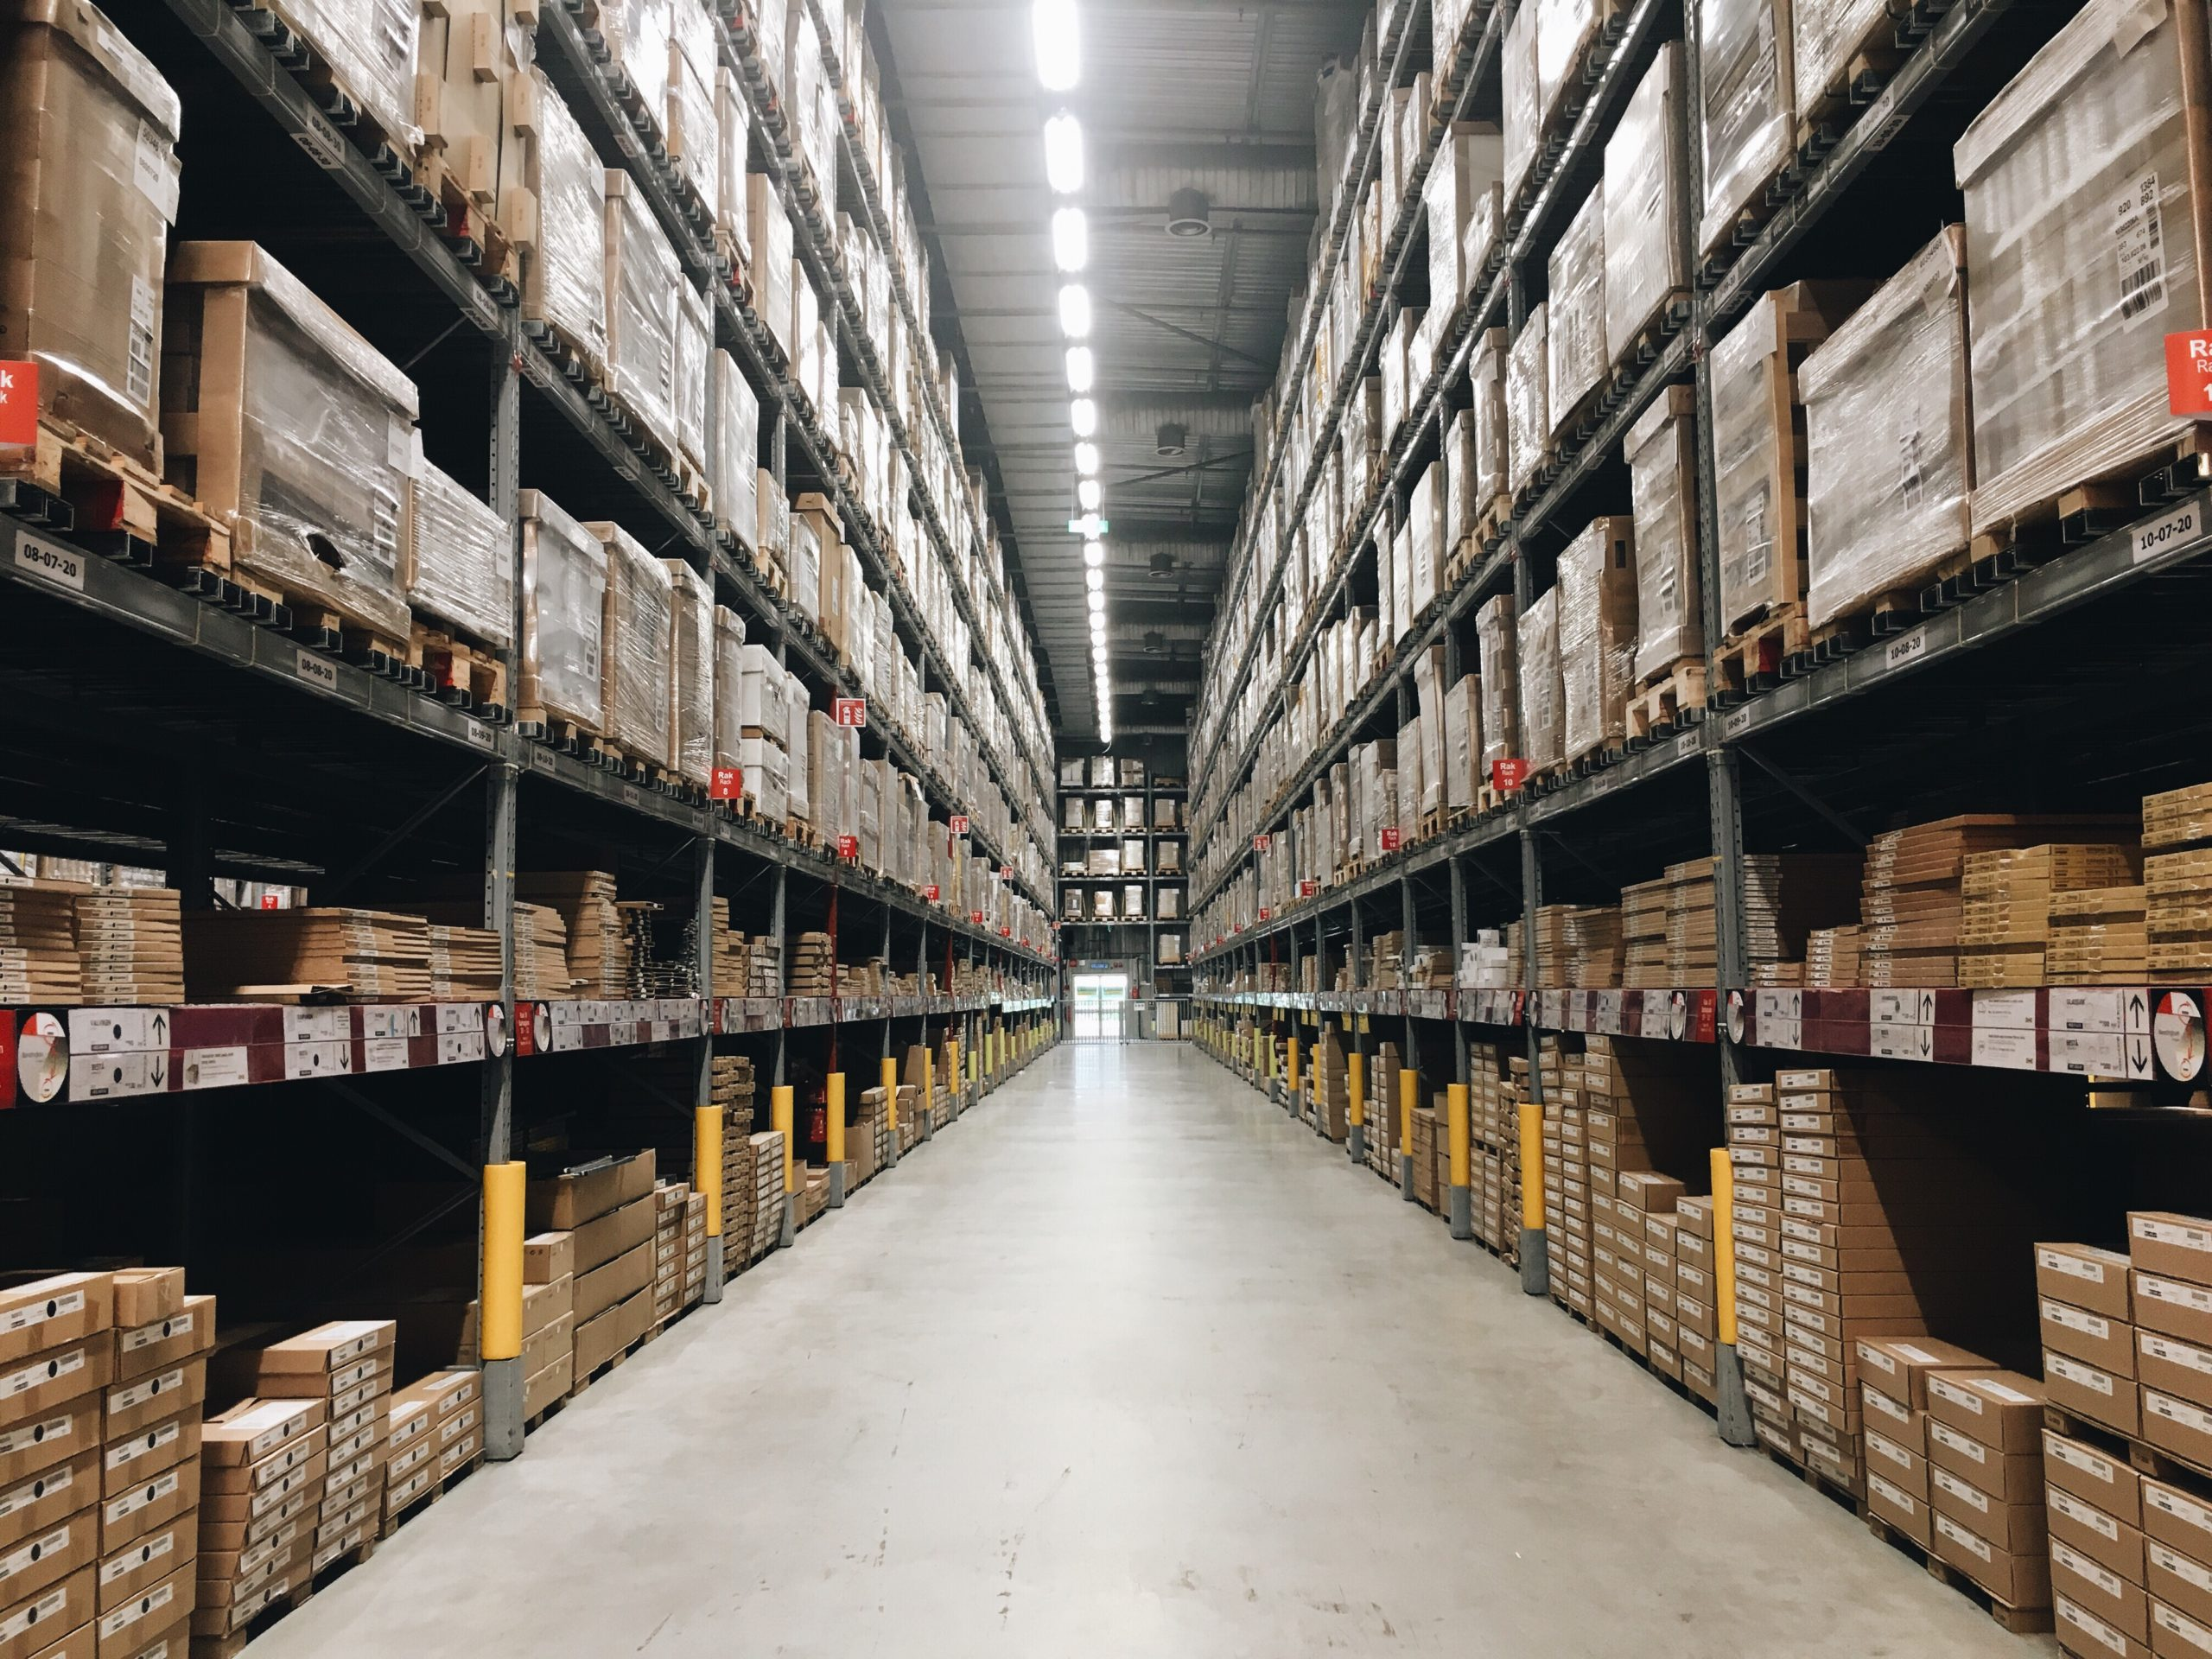 floor to ceiling shelving in warehouse.